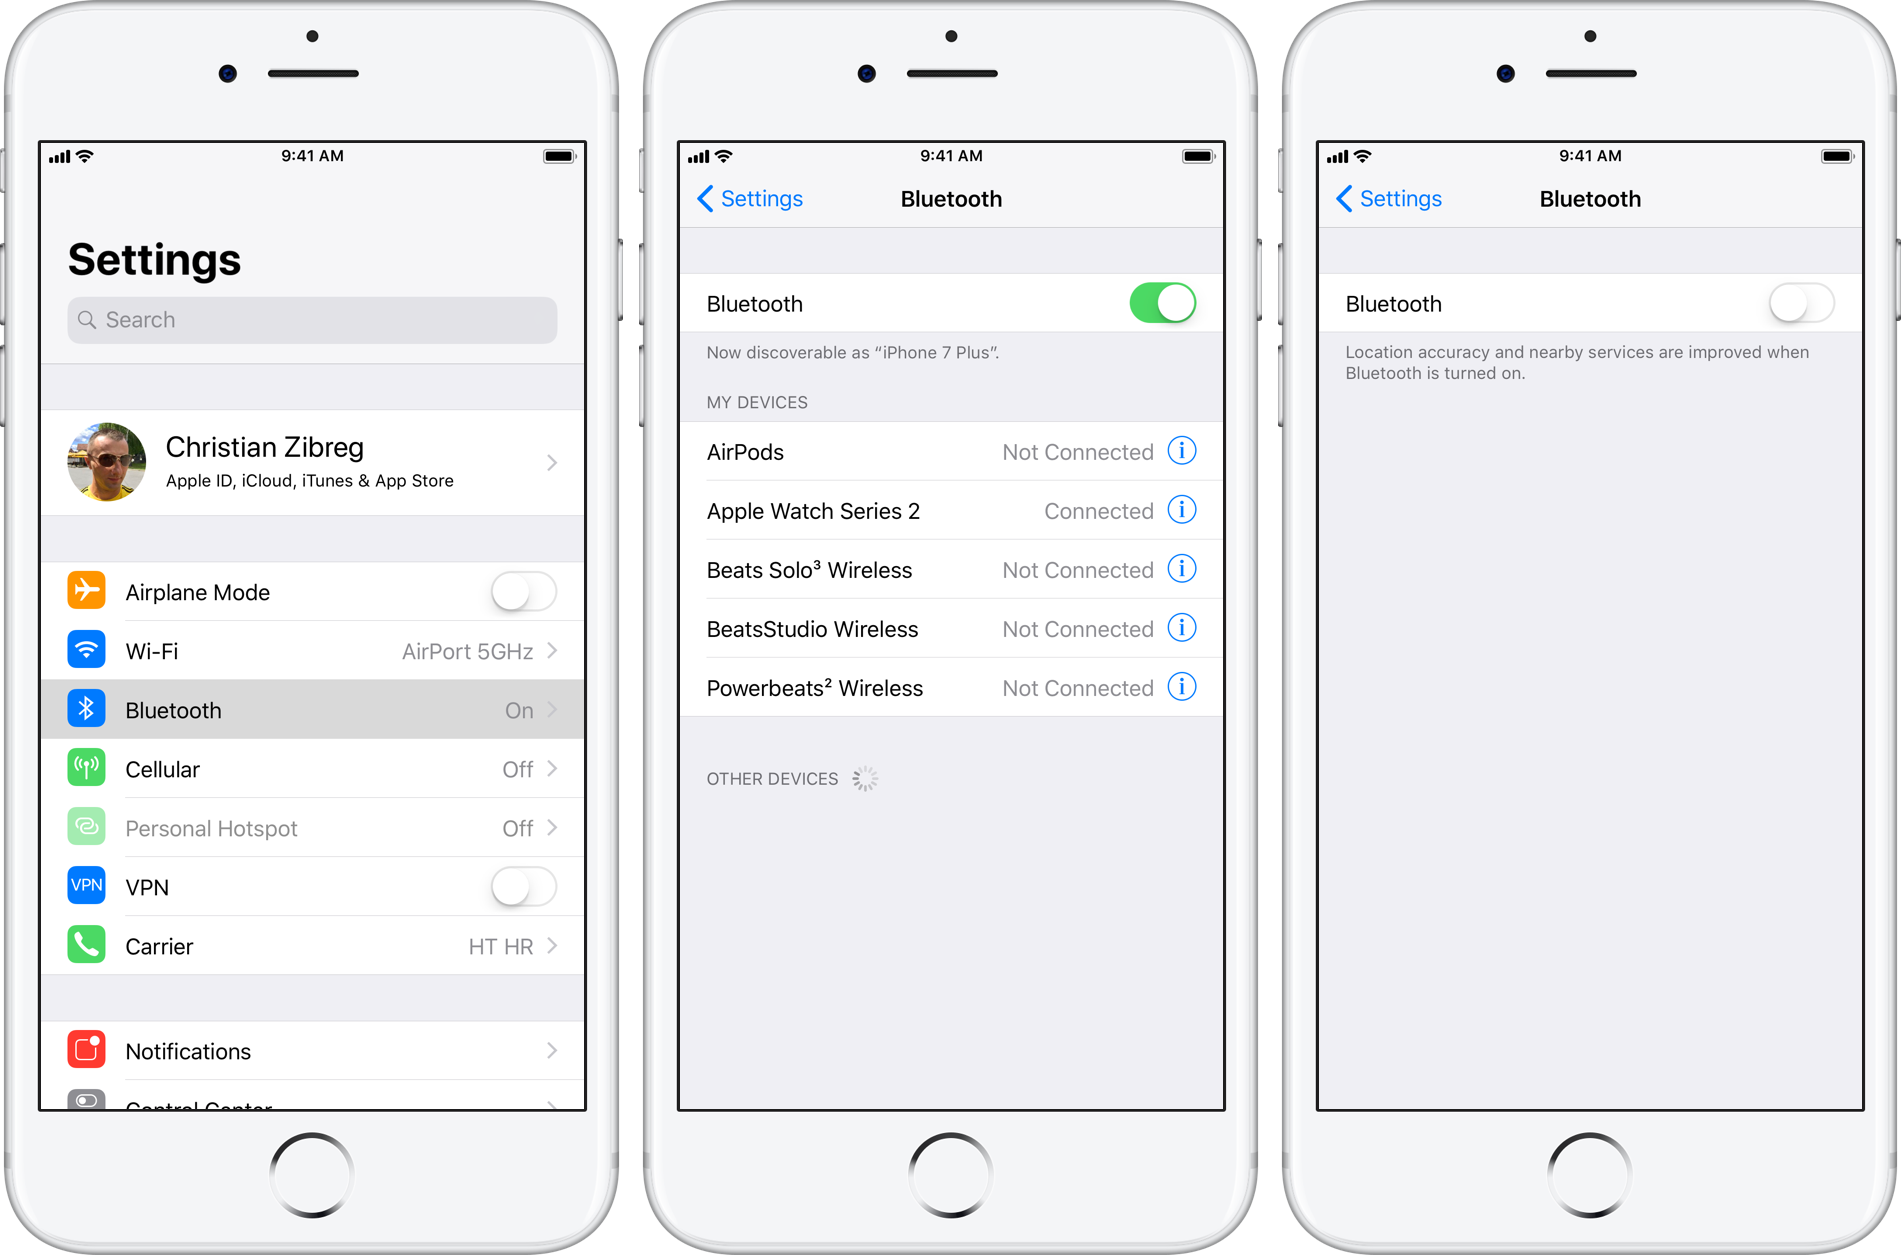 How To Fully Disable Wi Fi And Bluetooth In Ios 11 For All Networks And Devices